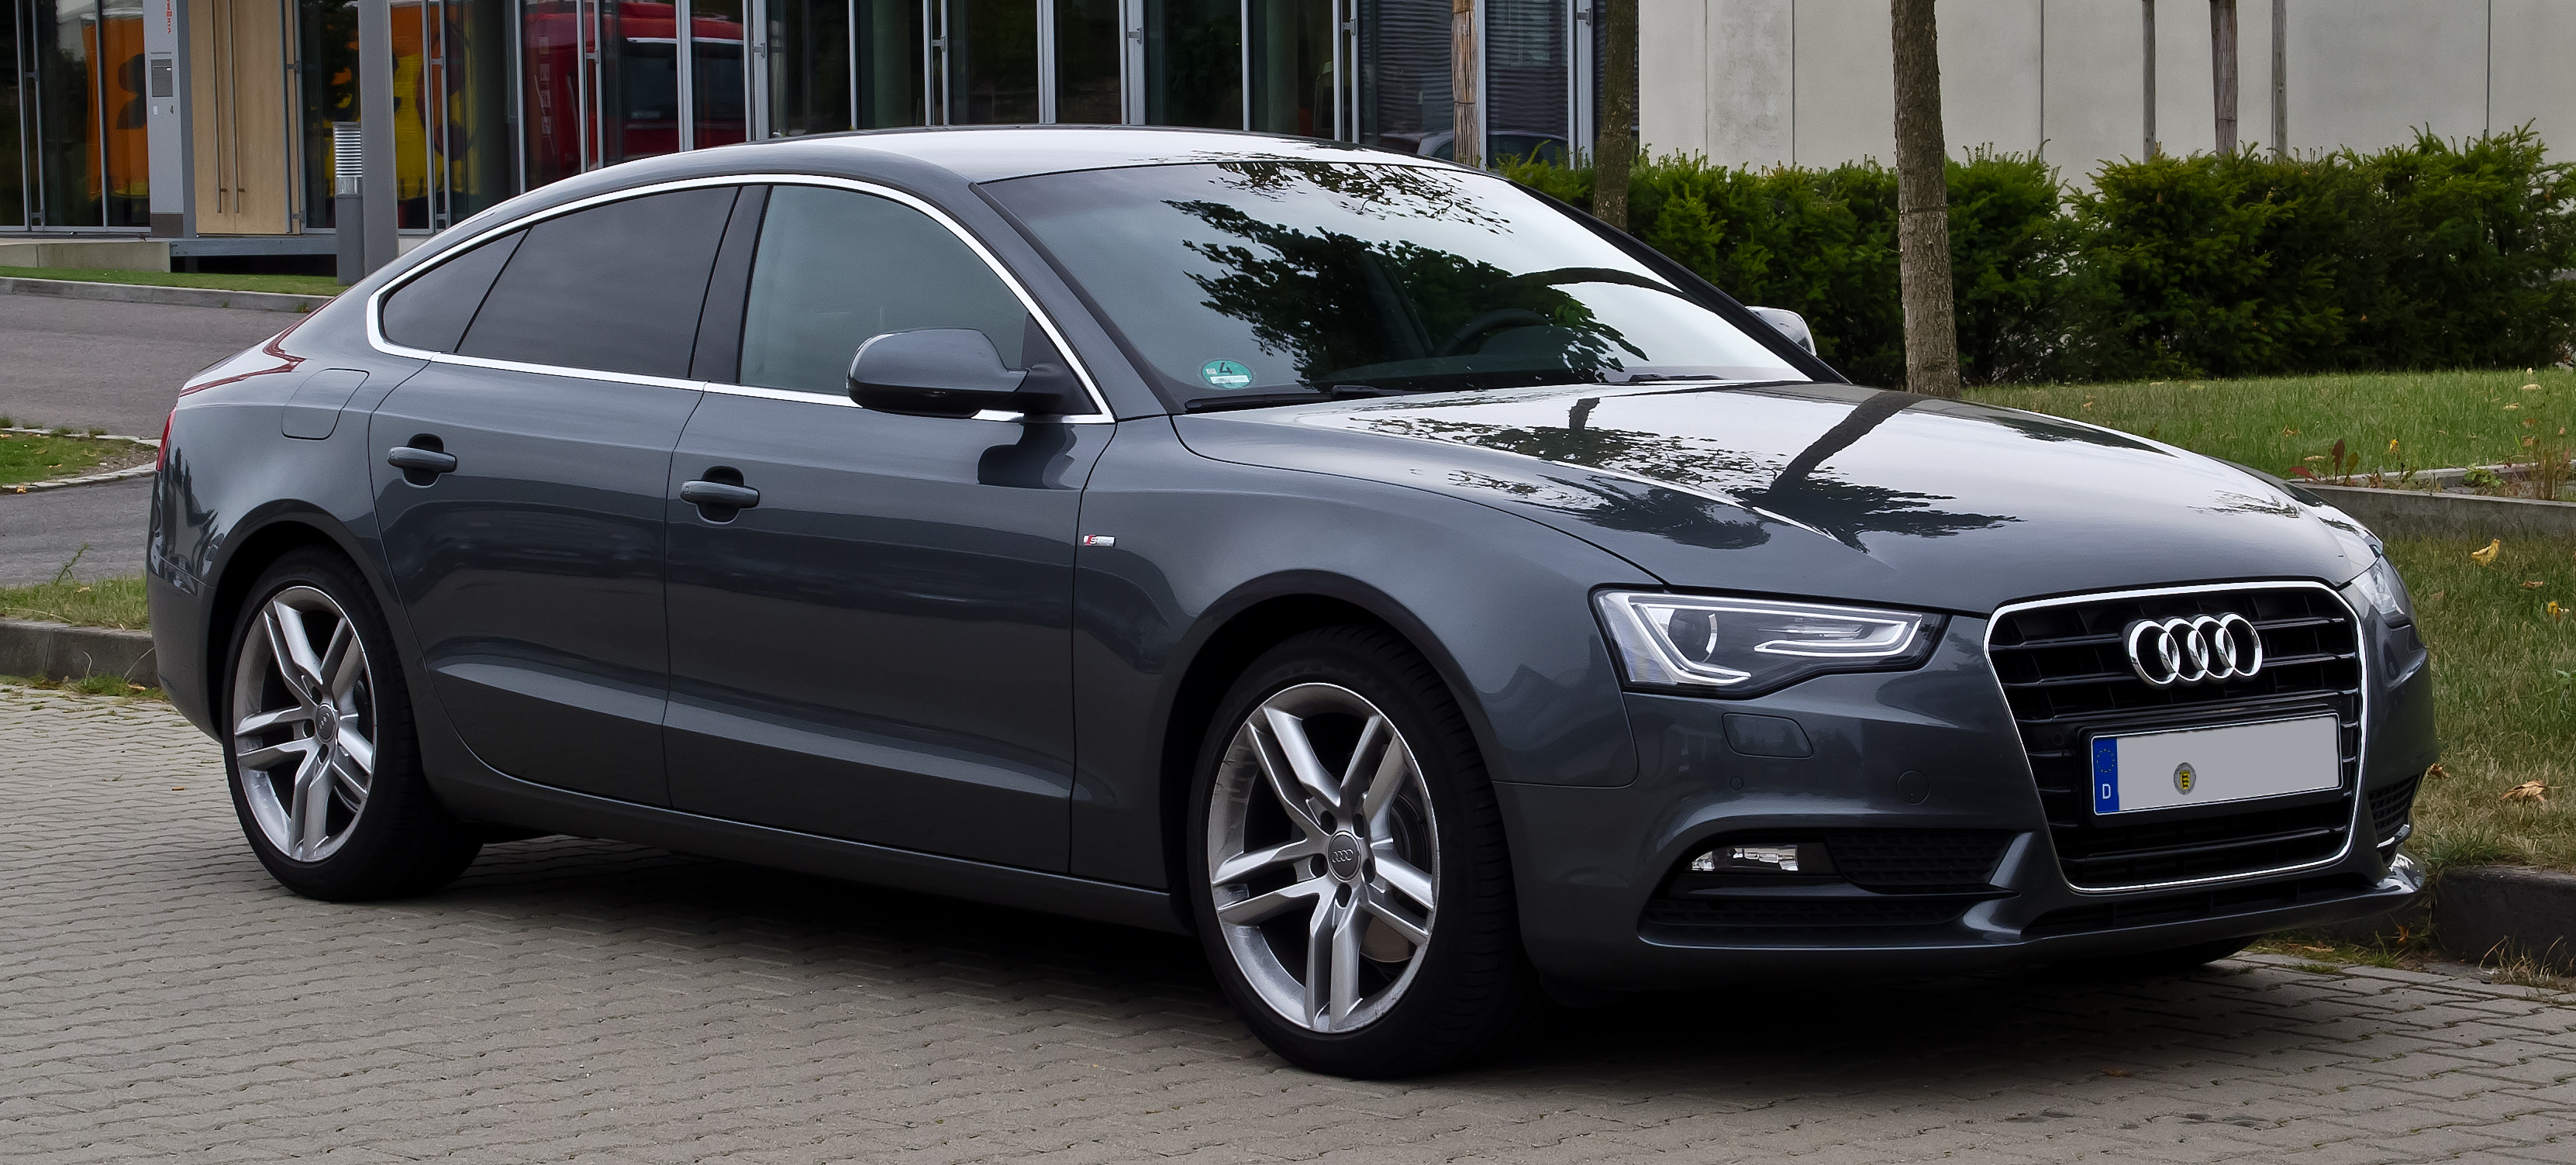 Audi a5 20 tdi 2012 review